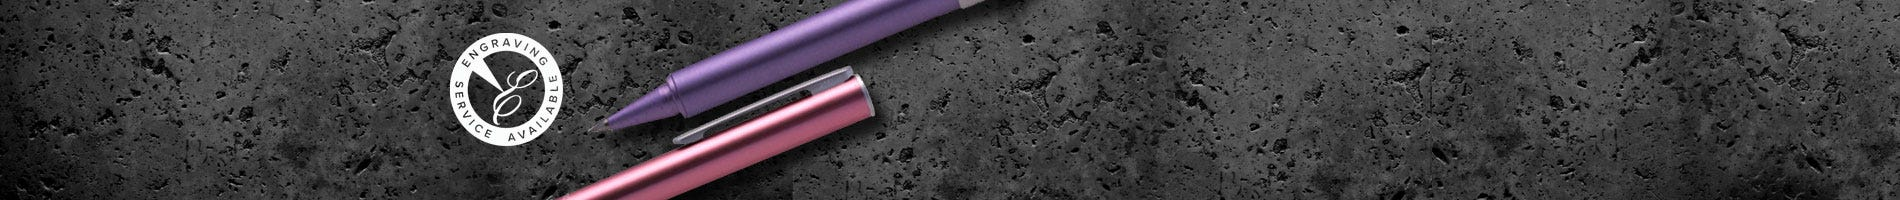 OHTO Tasche pink and purple pocket pens